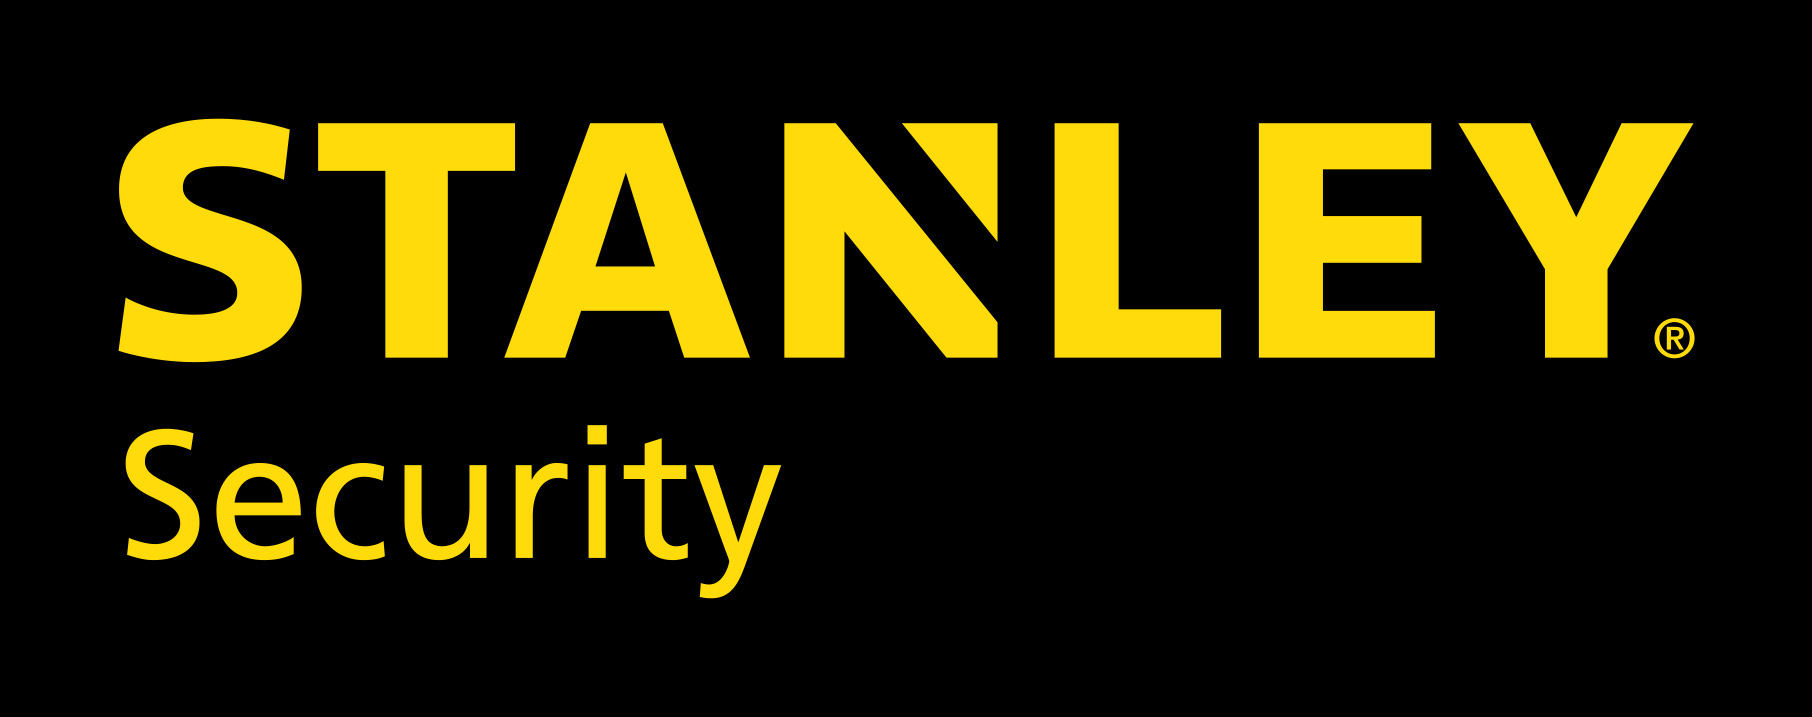 STANLEY SECURITY_1032_logo